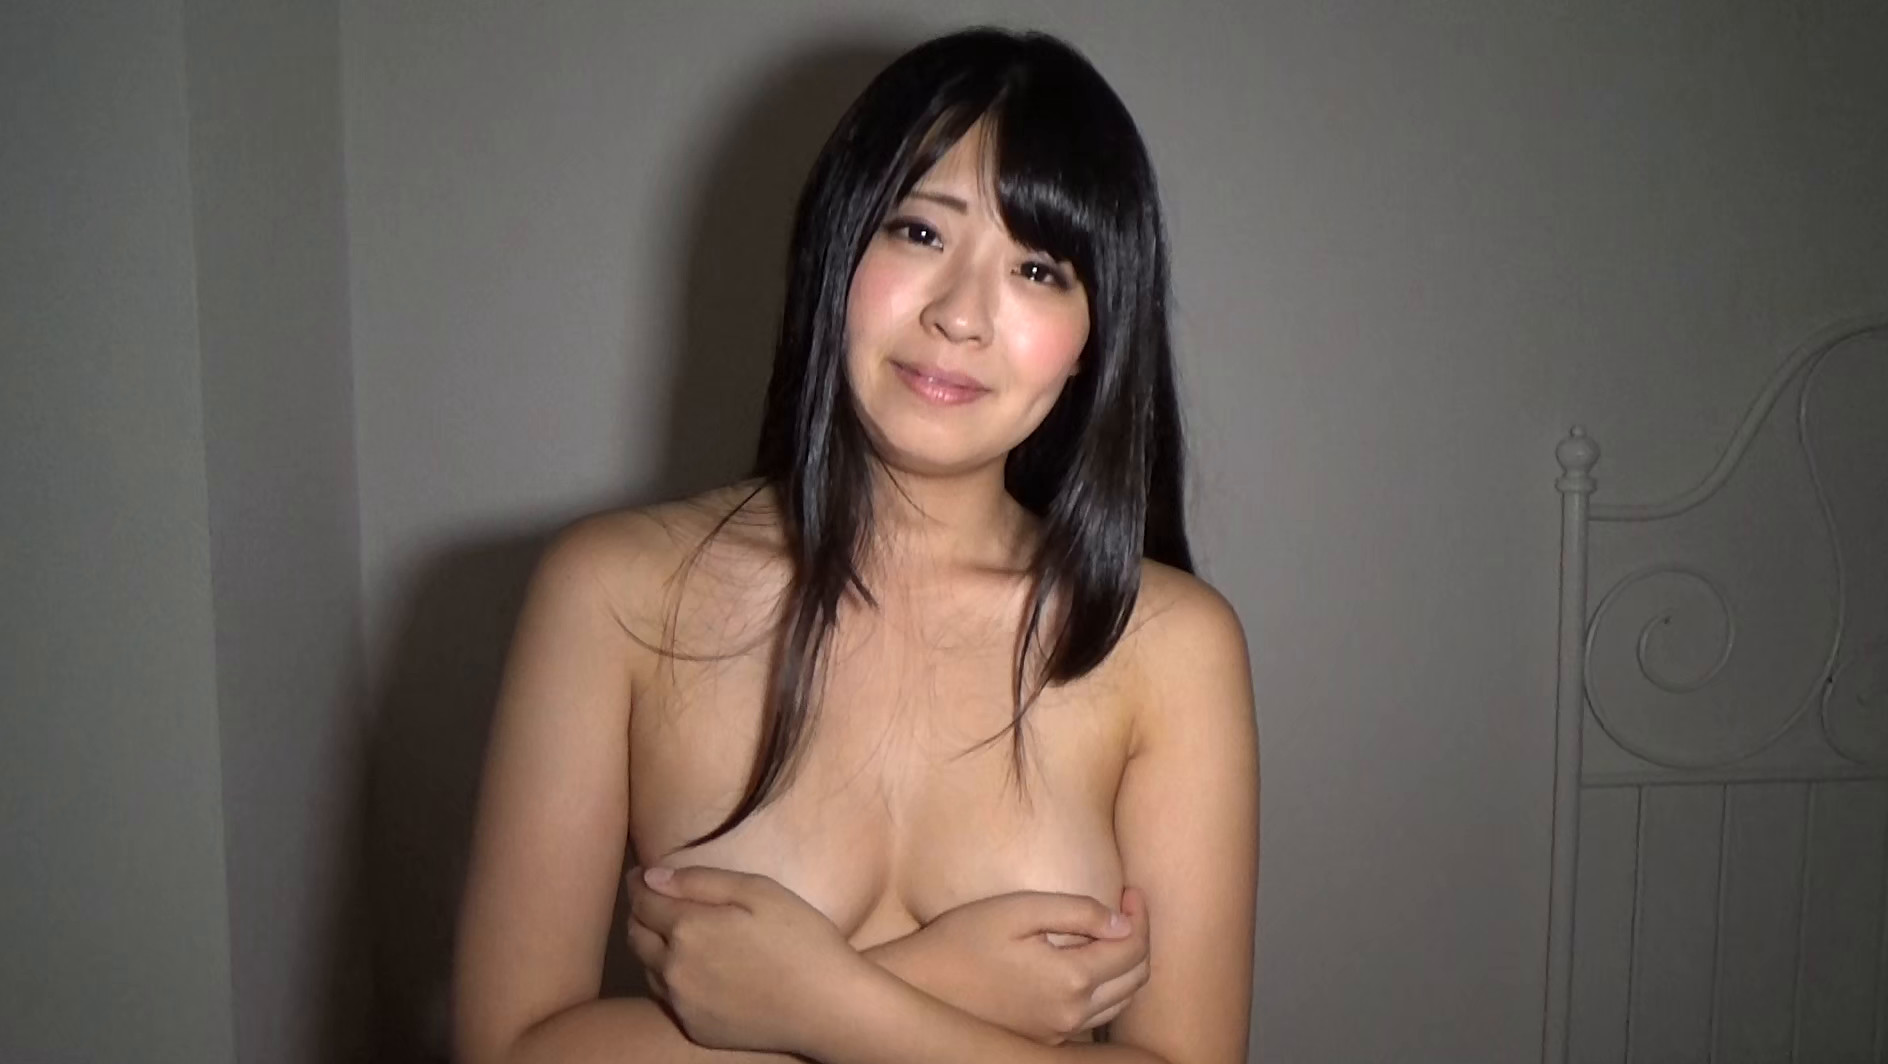 Gカップ さとう愛理 デカ乳 快楽拷問 さとう愛理